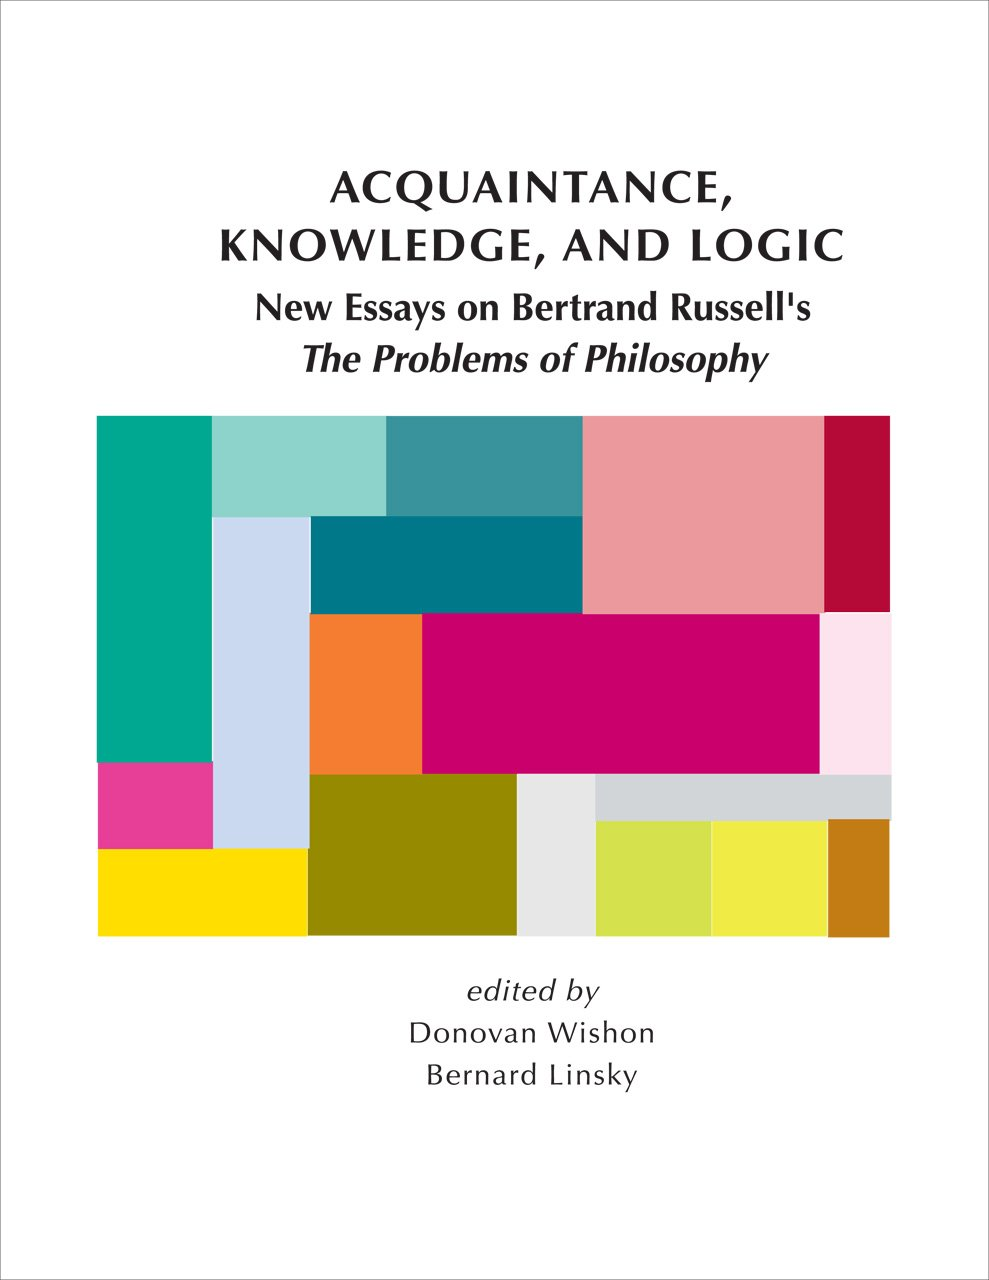 acquaintance knowledge and logic new essays on bertrand acquaintance knowledge and logic new essays on bertrand russell s the problems of philosophy lecture notes donovan wishon bernard linsky